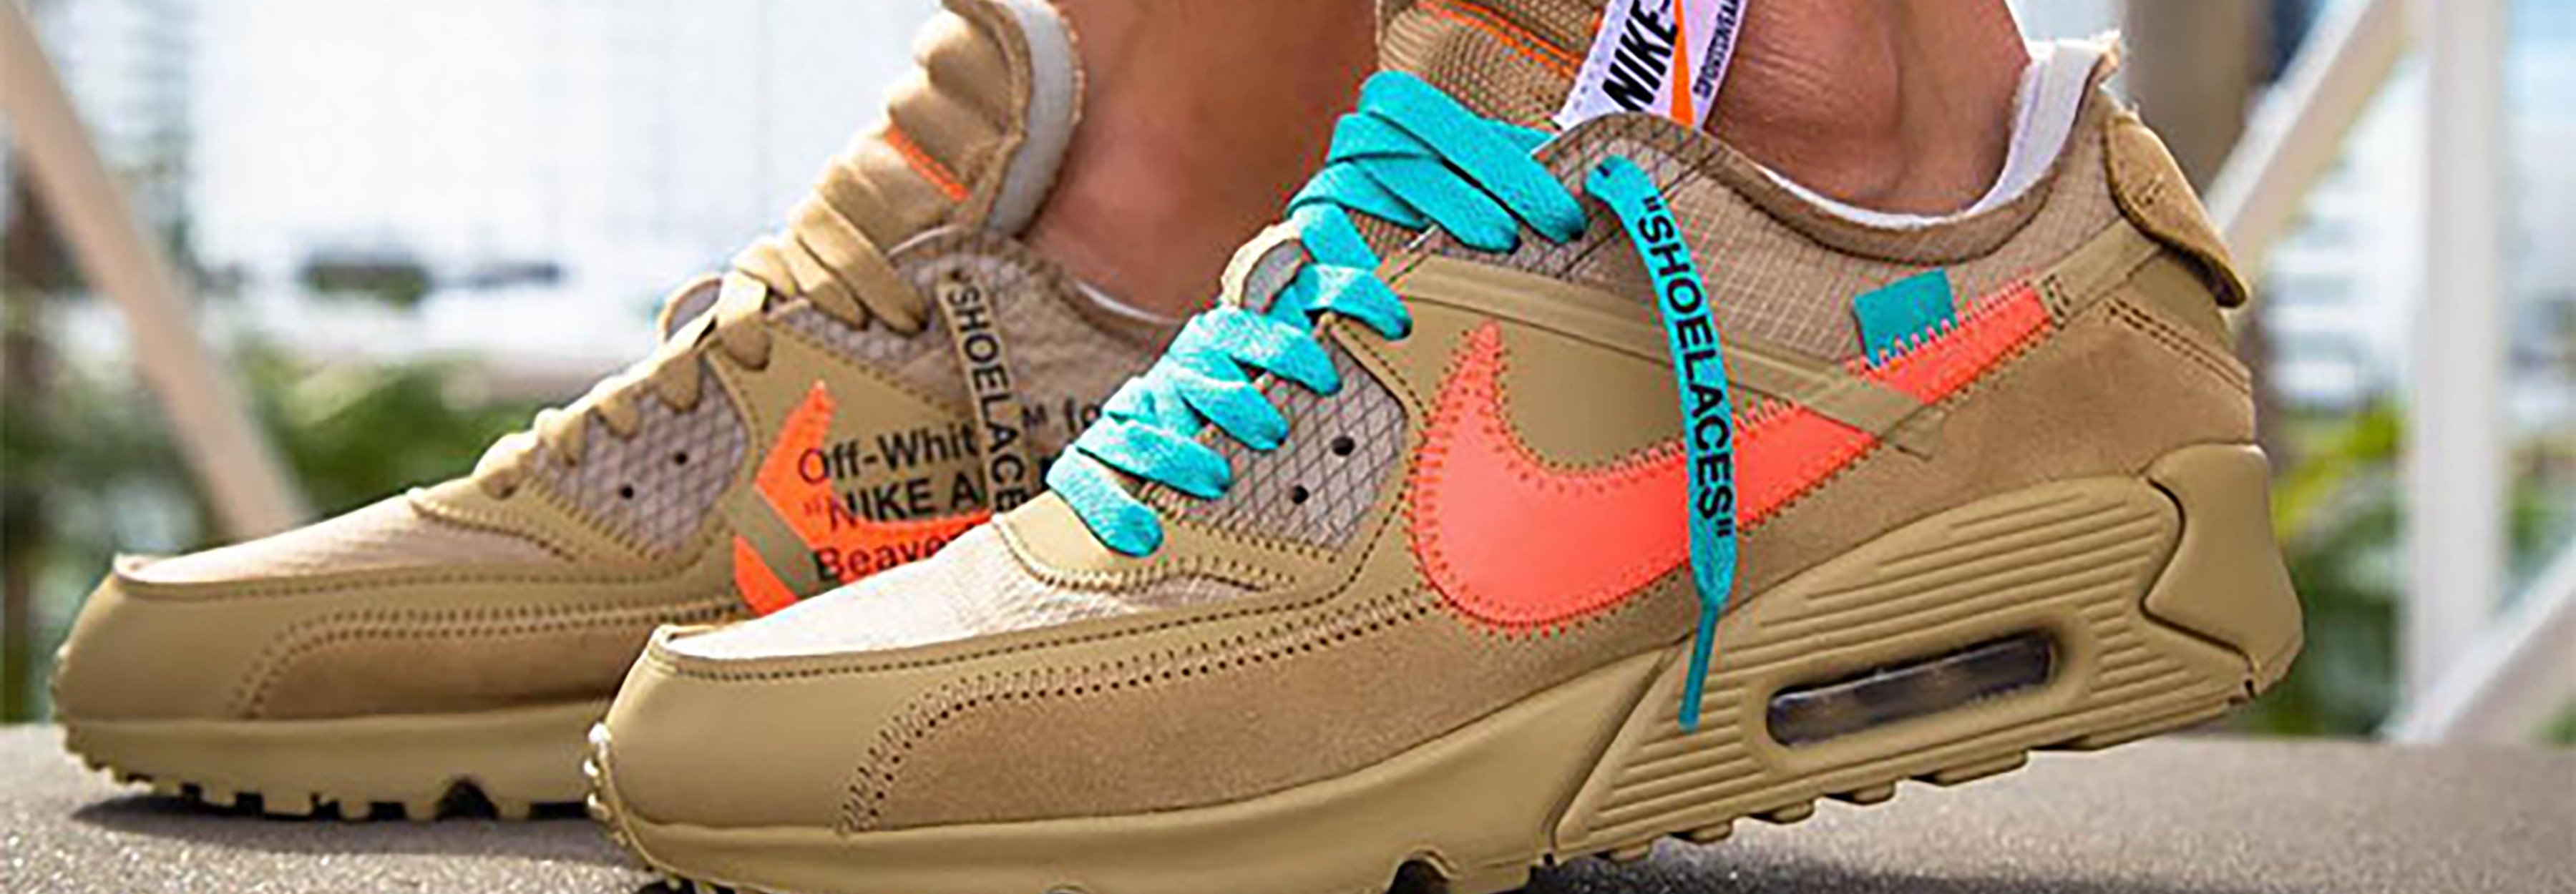 best loved b88df fe35b The Off-White x Nike Air Max 90  Desert Ore  Gets On-Foot Shots THE ICONIC  Edition